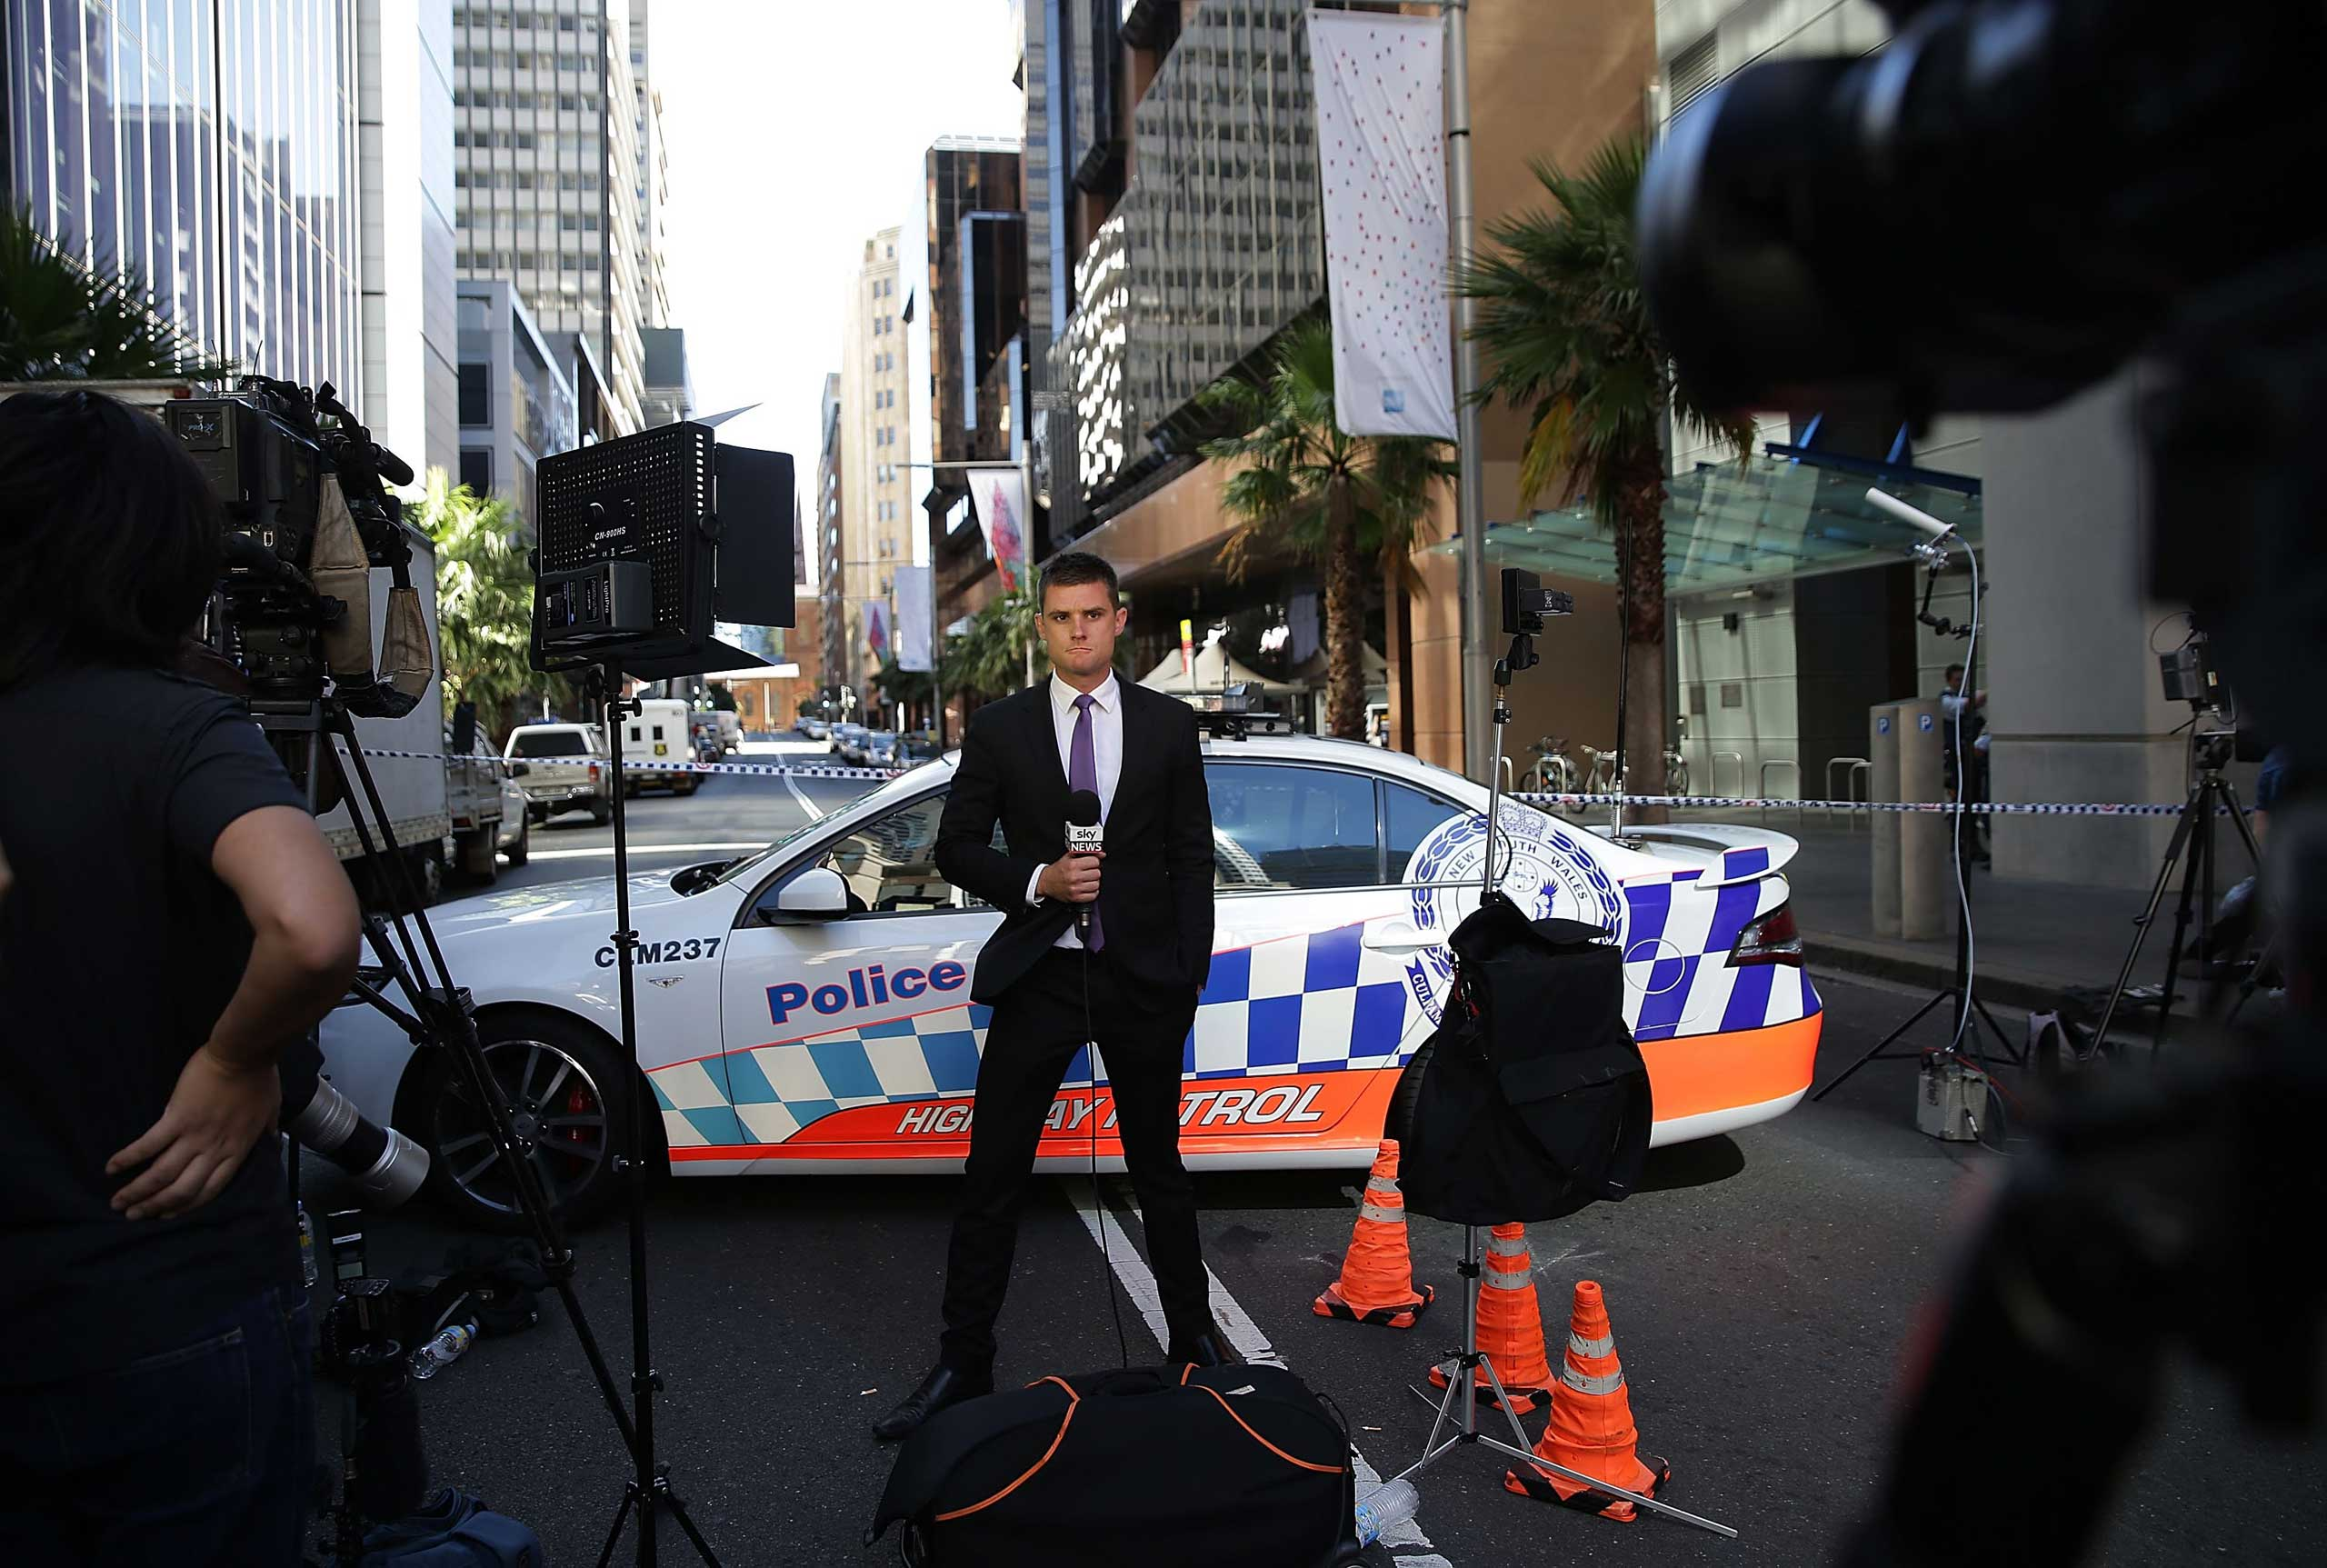 A TV presenter does a live cross from Phillip St on Dec. 15, 2014 in Sydney.